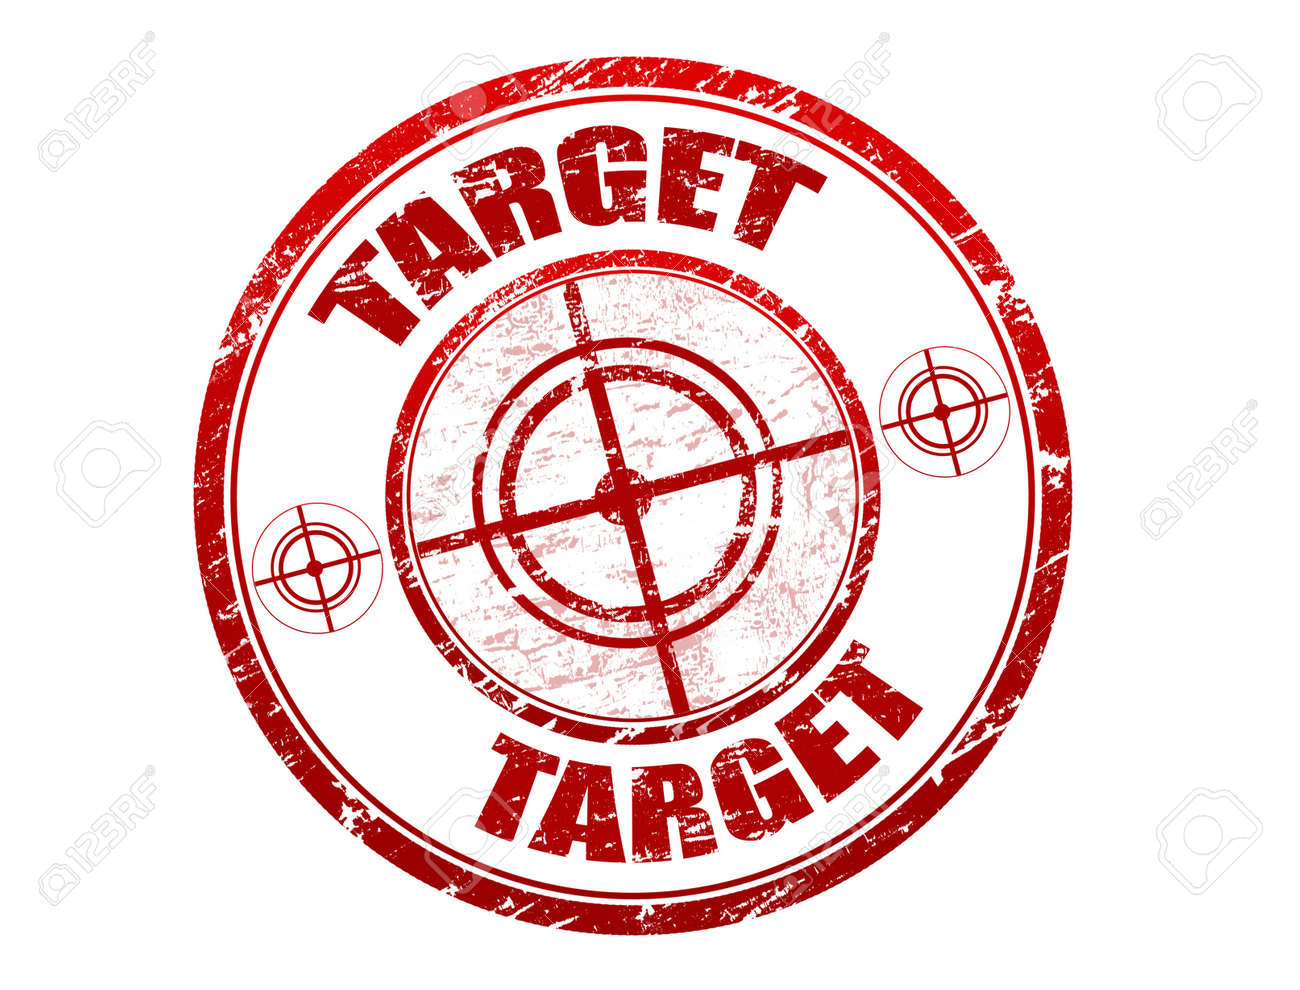 Image result for target sign